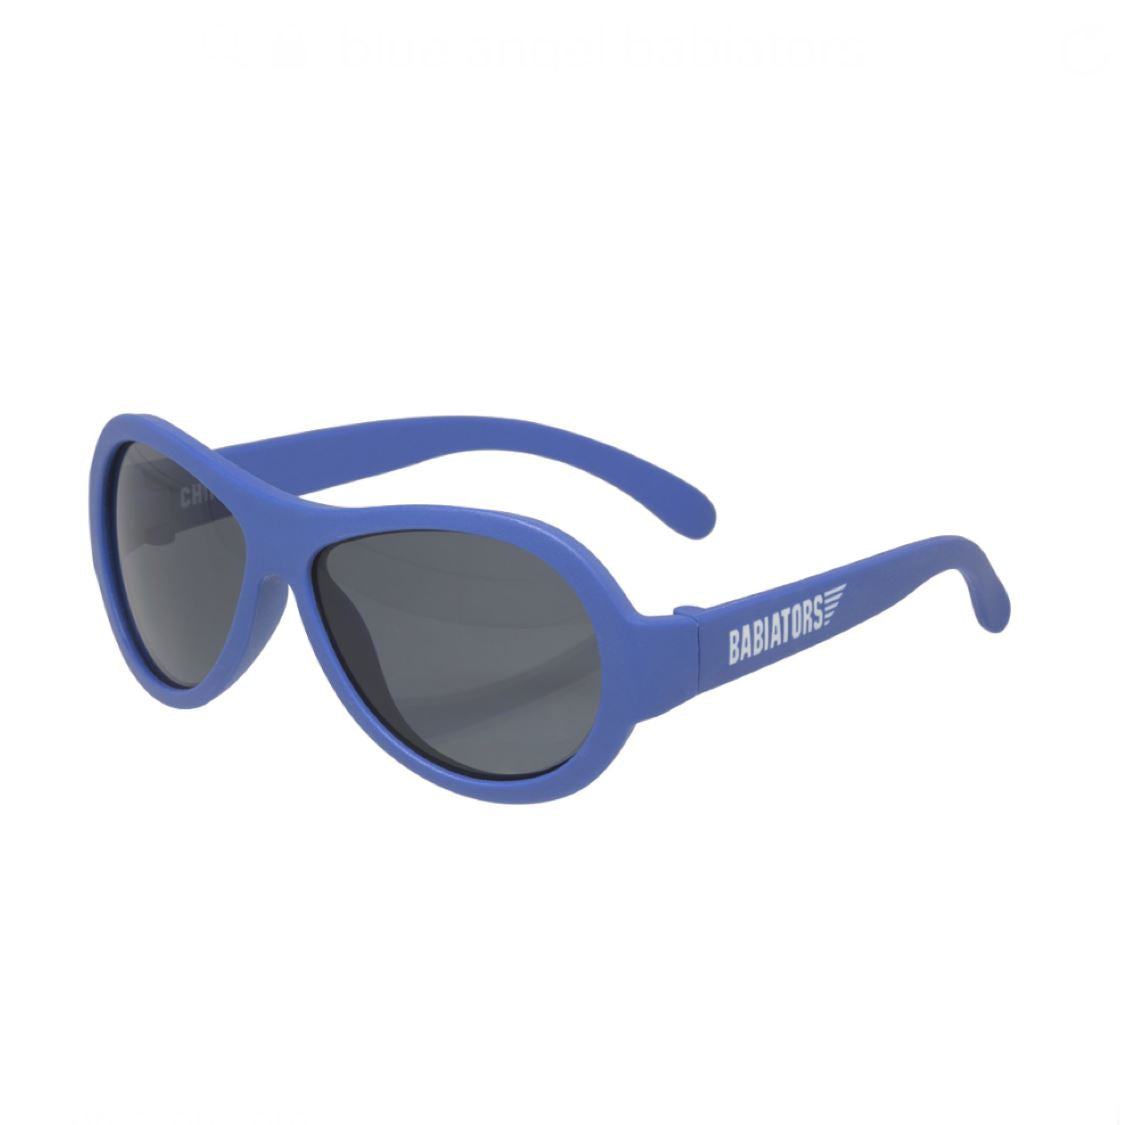 Babiators Original Sunglasses - Blue Angels Sunglasses Babiators